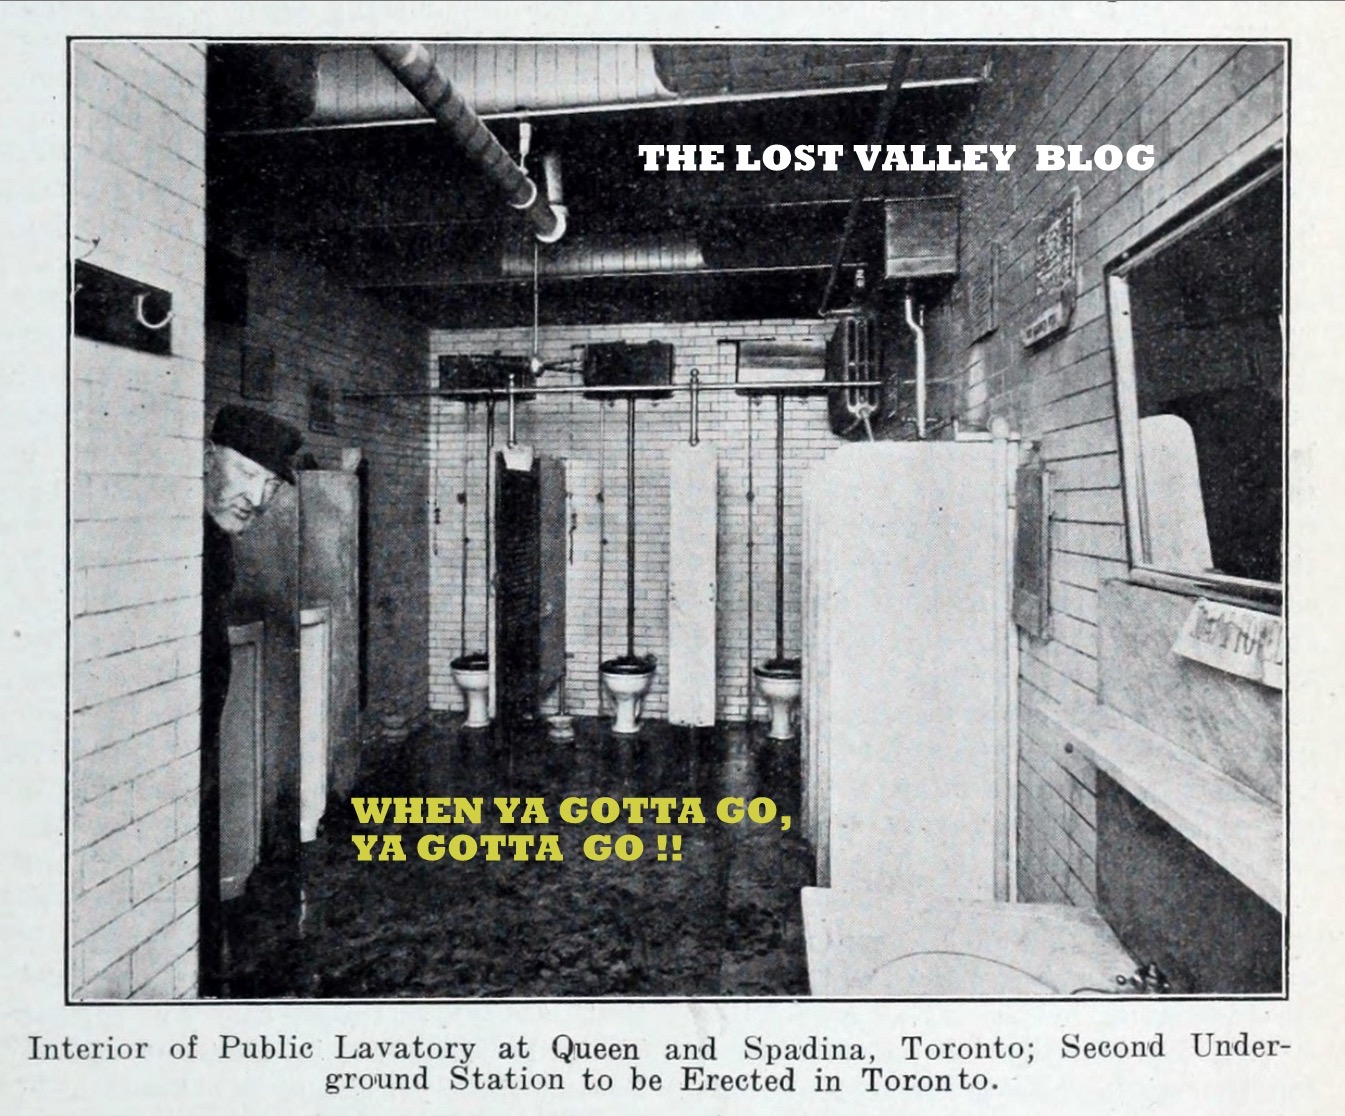 Public lavatory at Queen and Spading, Toronto - circa 1906